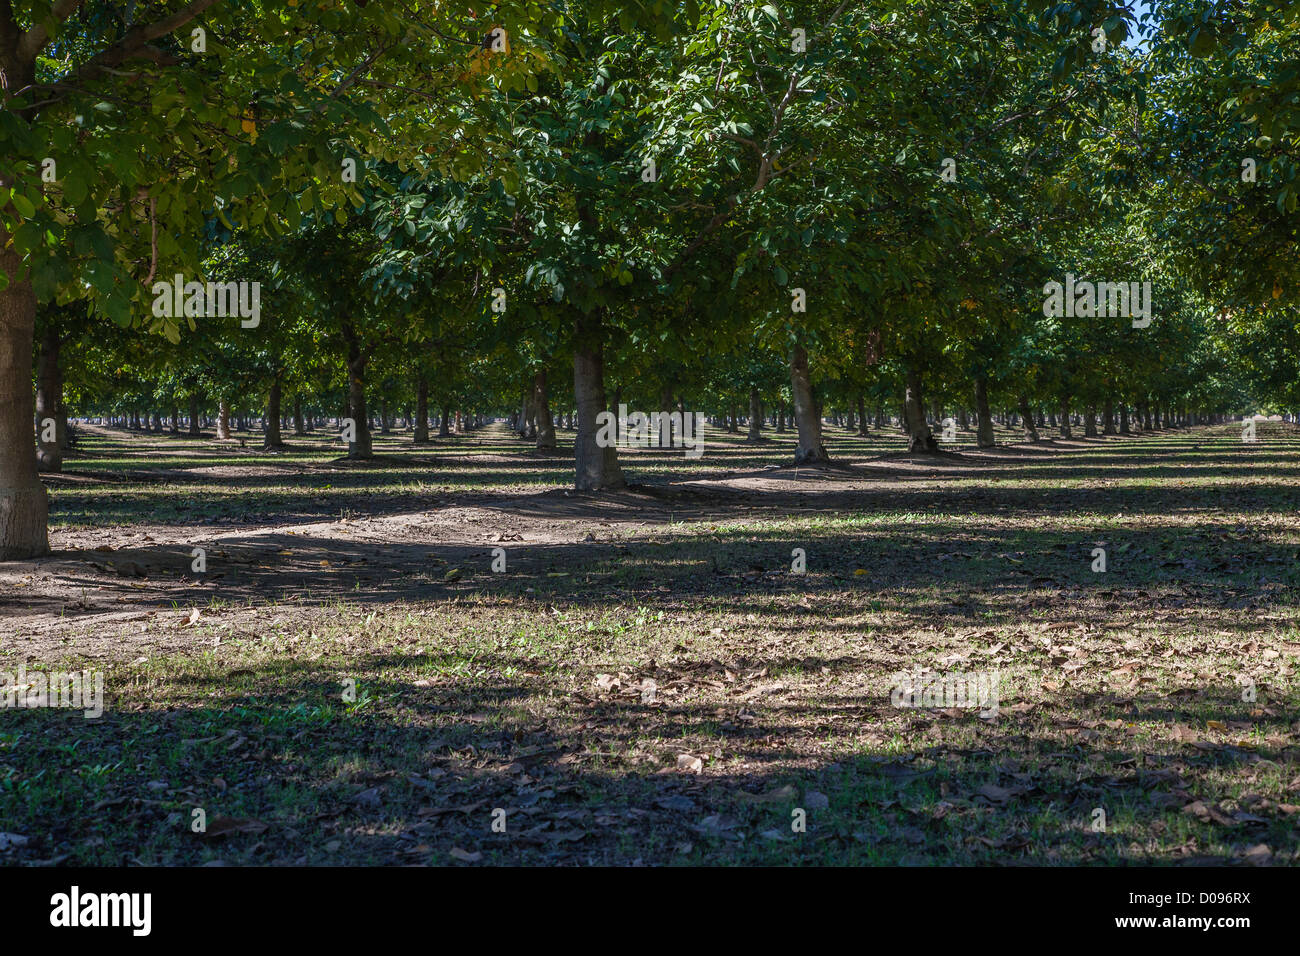 Rows of walnut trees in a walnut orchard in Colusa County, California. - Stock Image